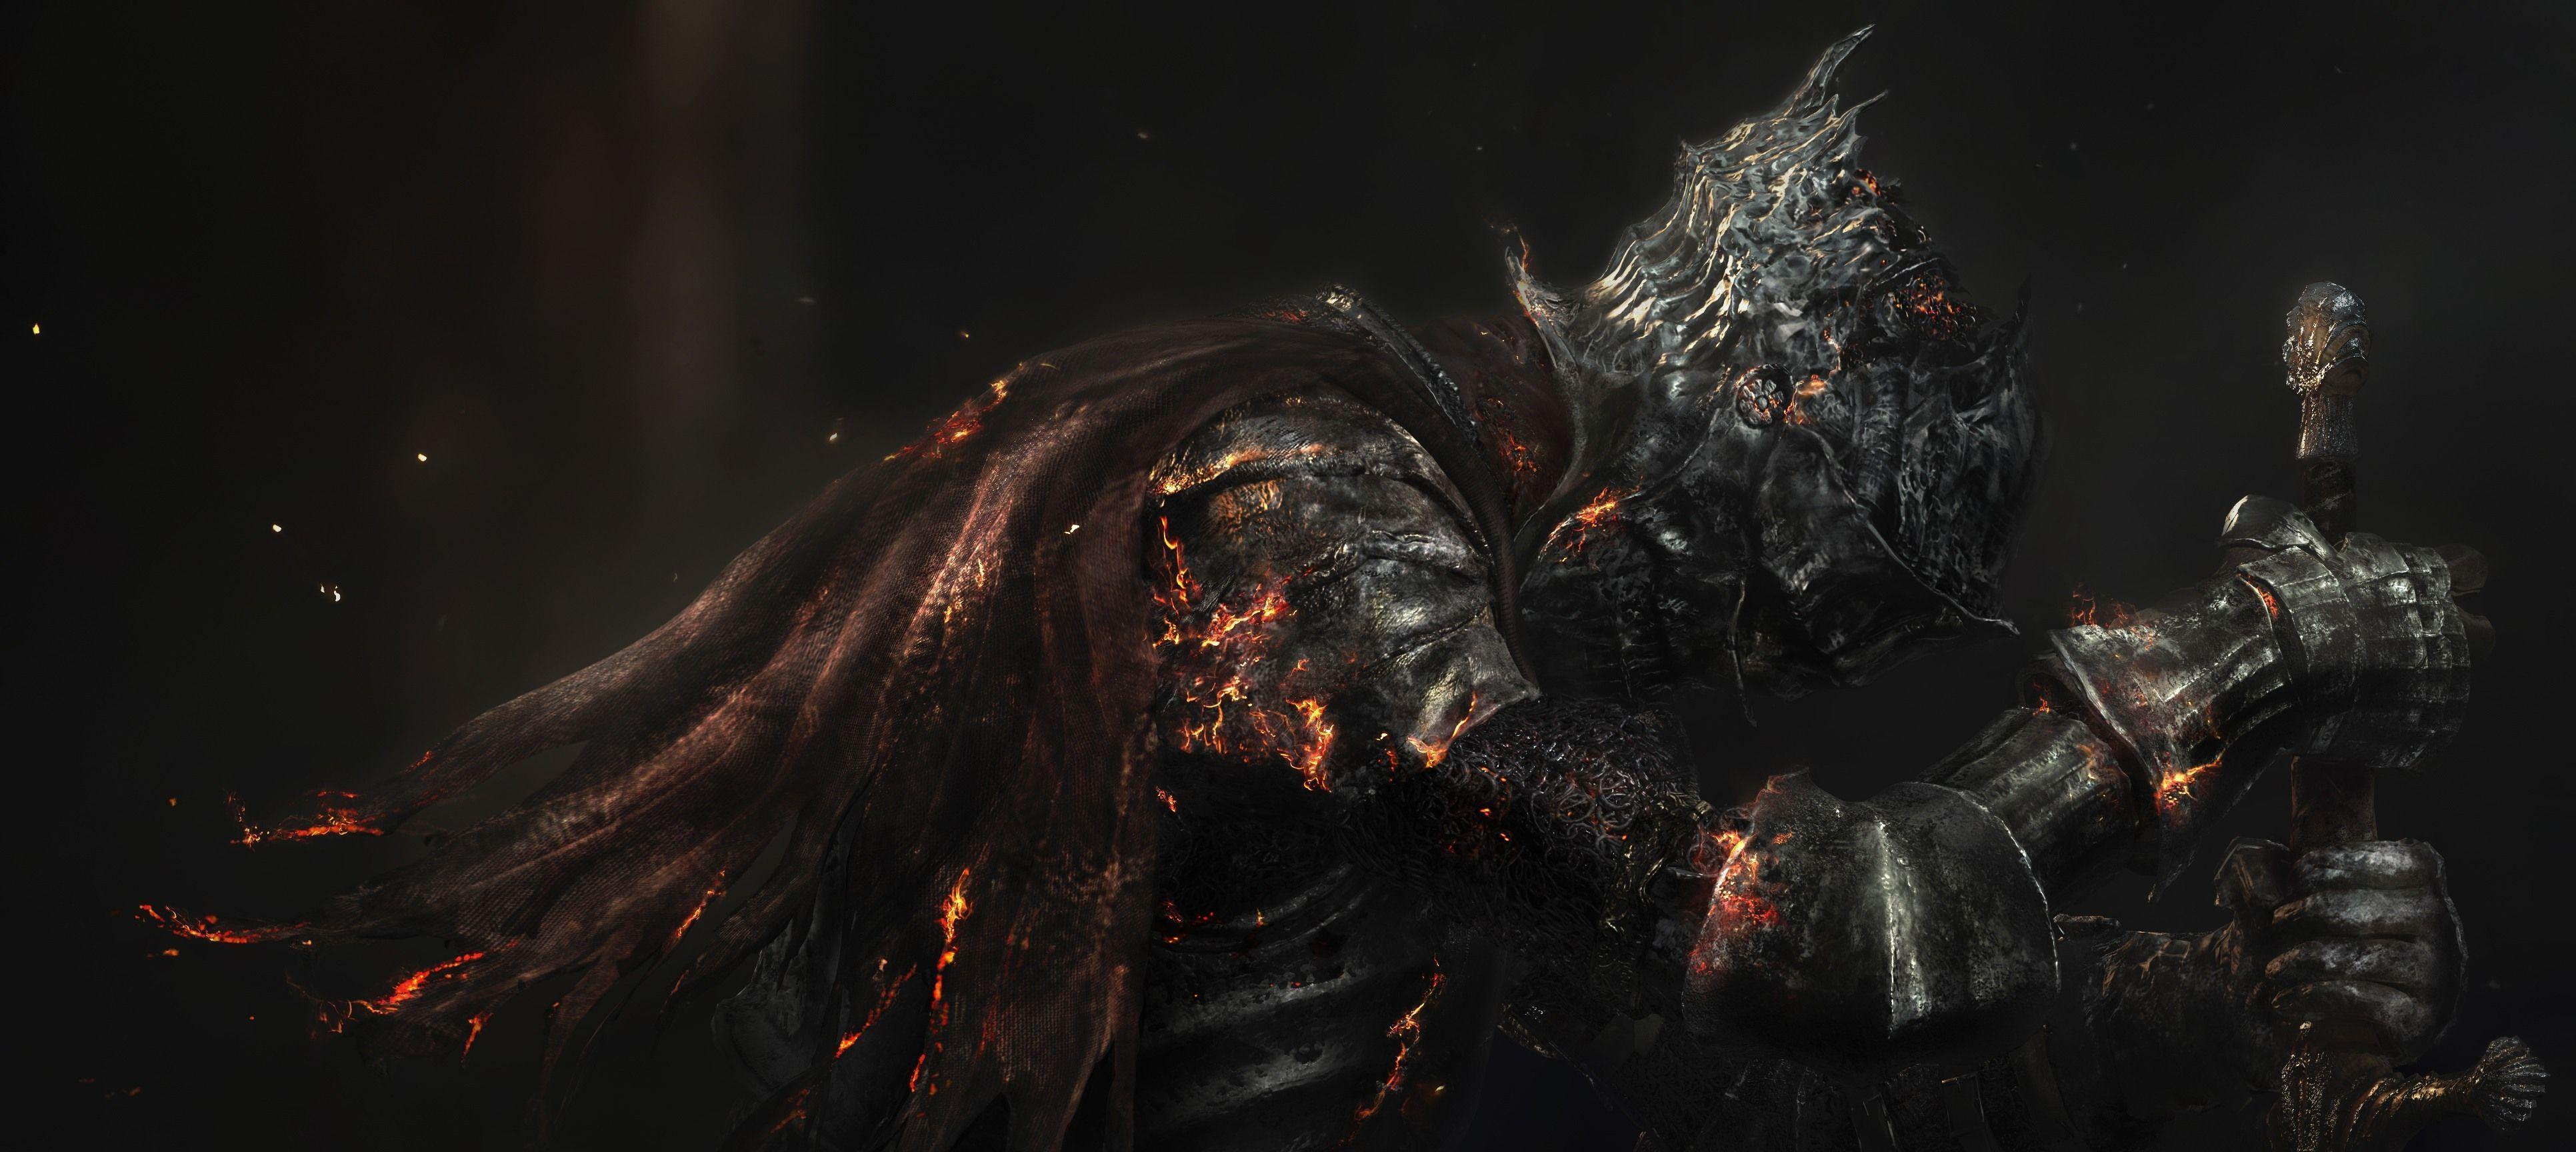 dark souls wallpaper breaking - photo #26